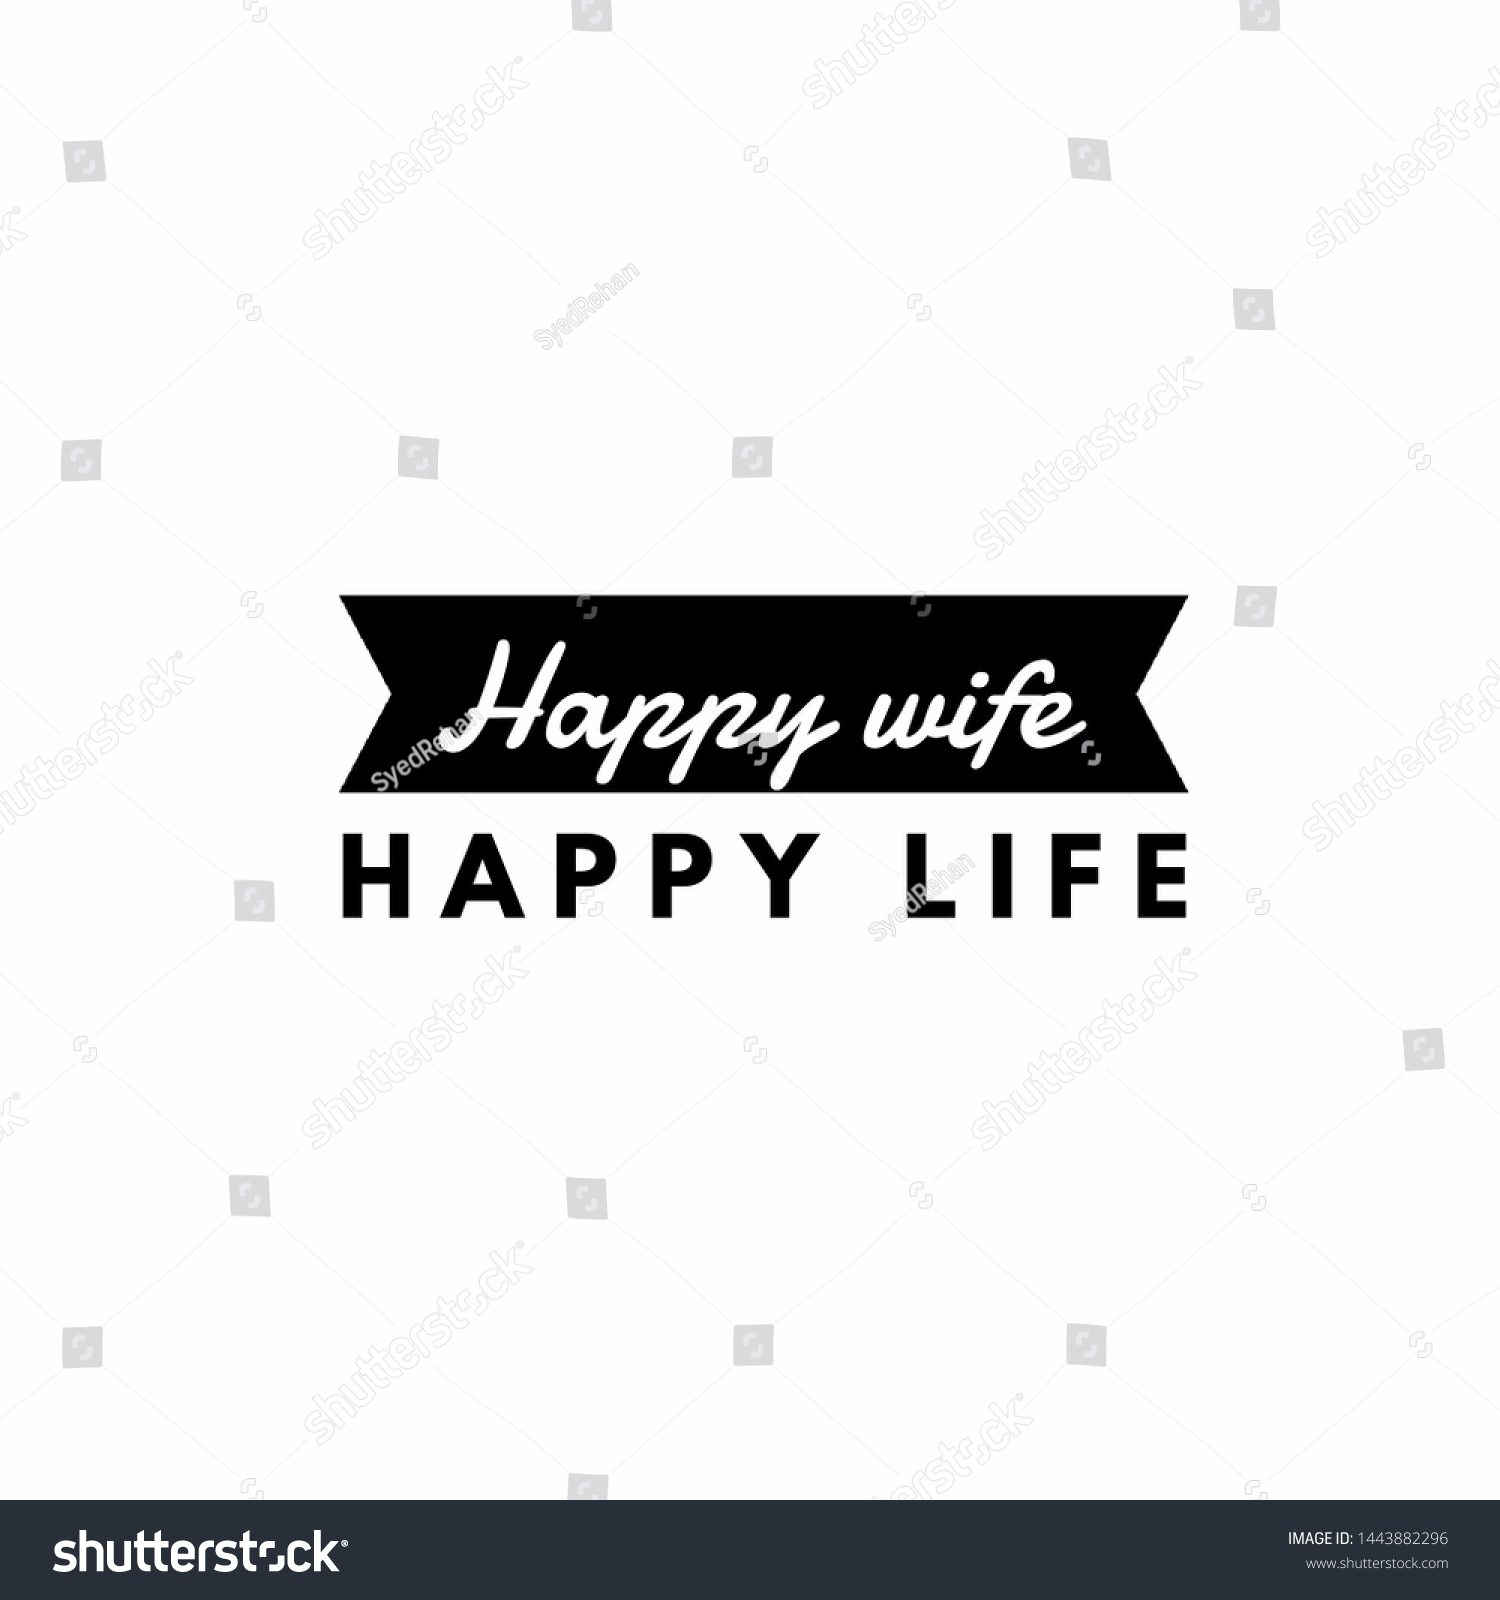 Happy Wife Happy Life Quotes About Stock Illustration 1443882296